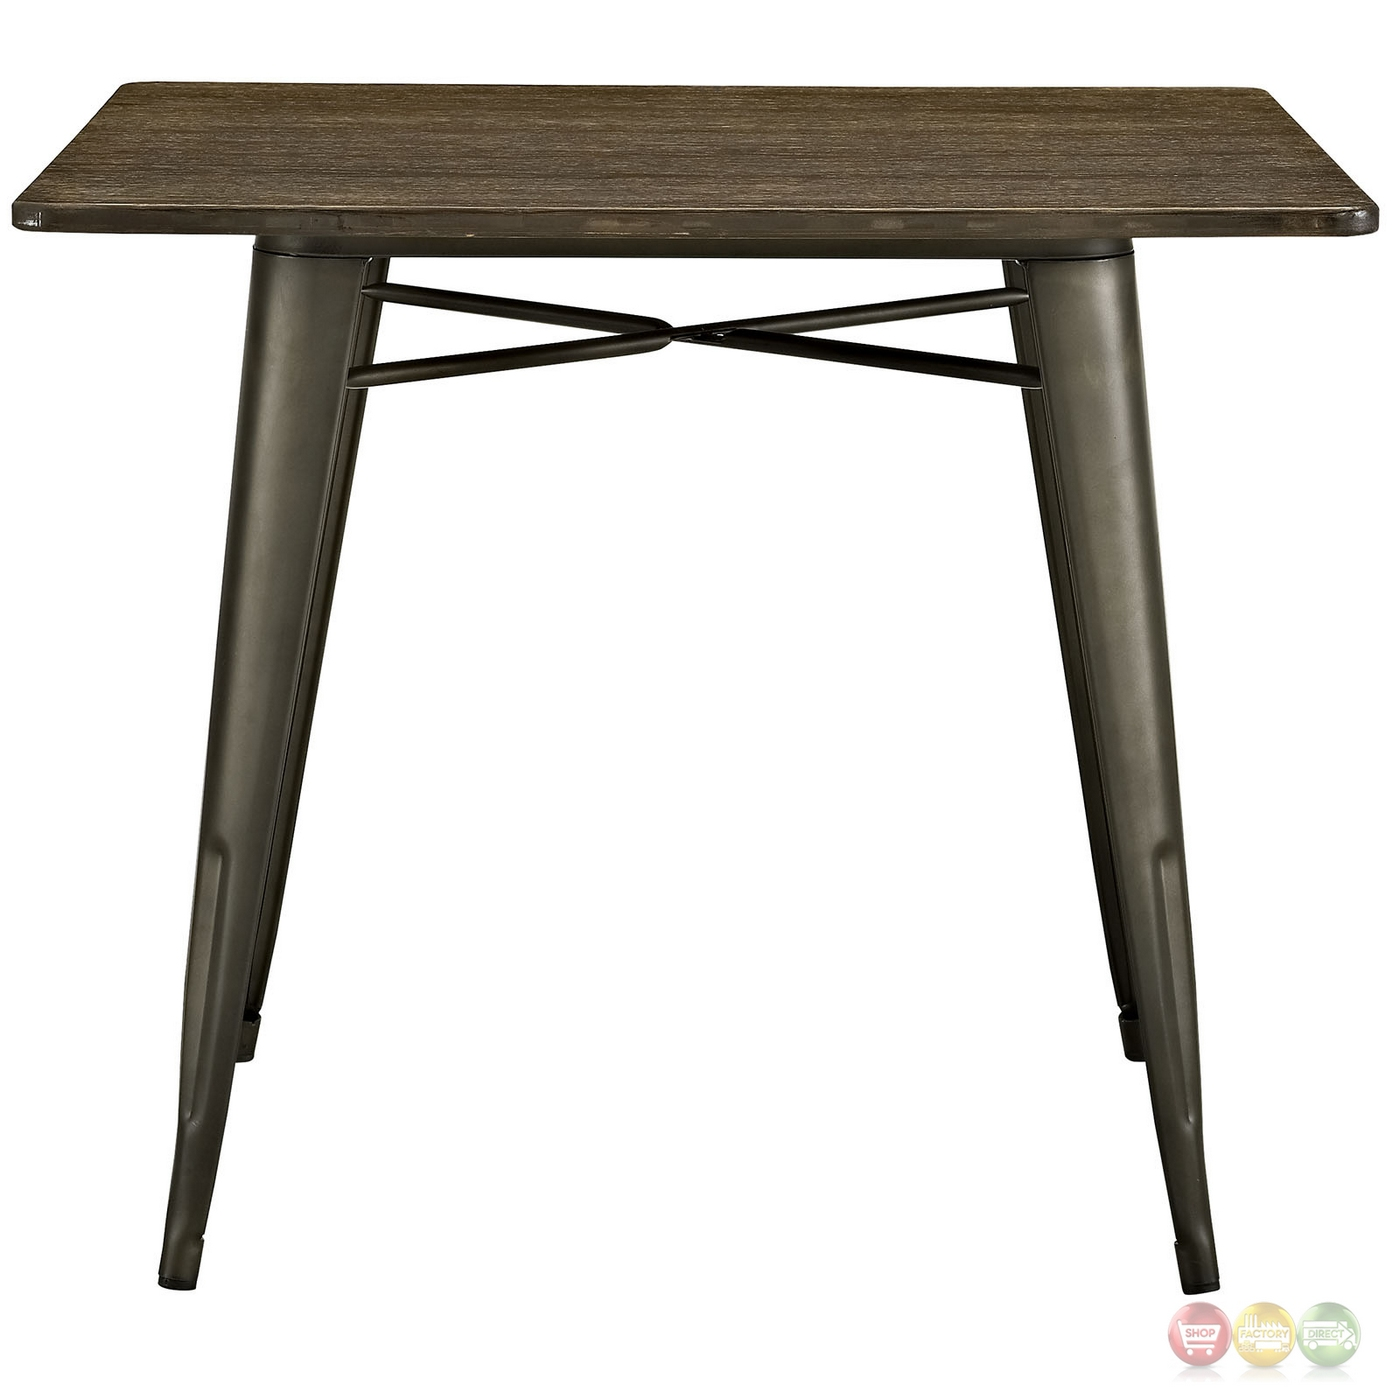 Superb img of  Industrial 36 Square Wood Dining Table With Steel Legs Brown with #963537 color and 1400x1400 pixels